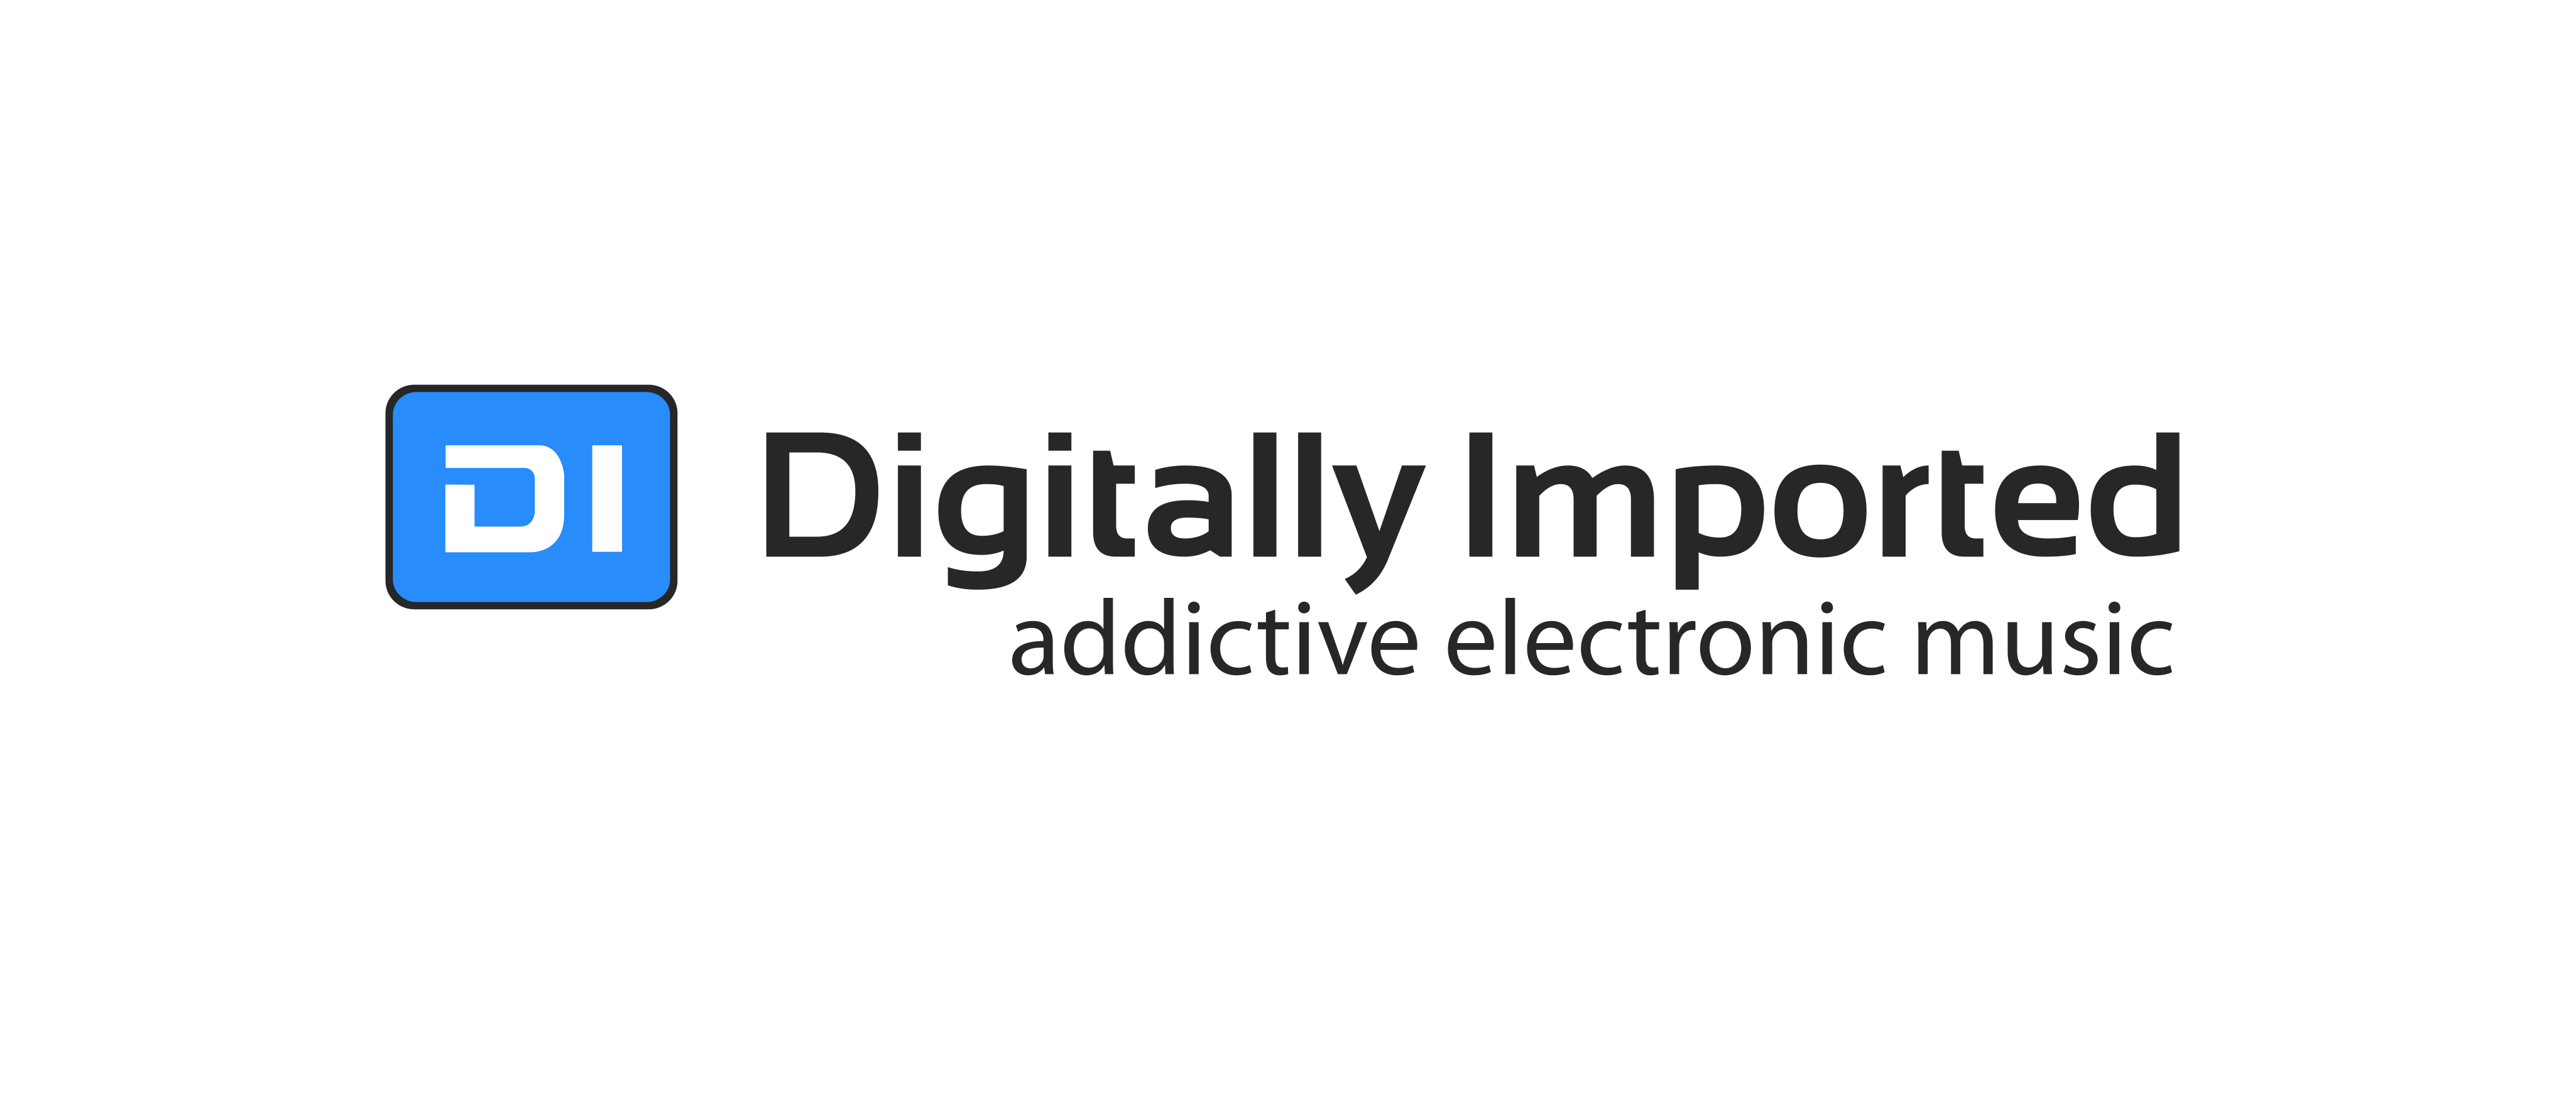 digitally imported goes live as first electronic music